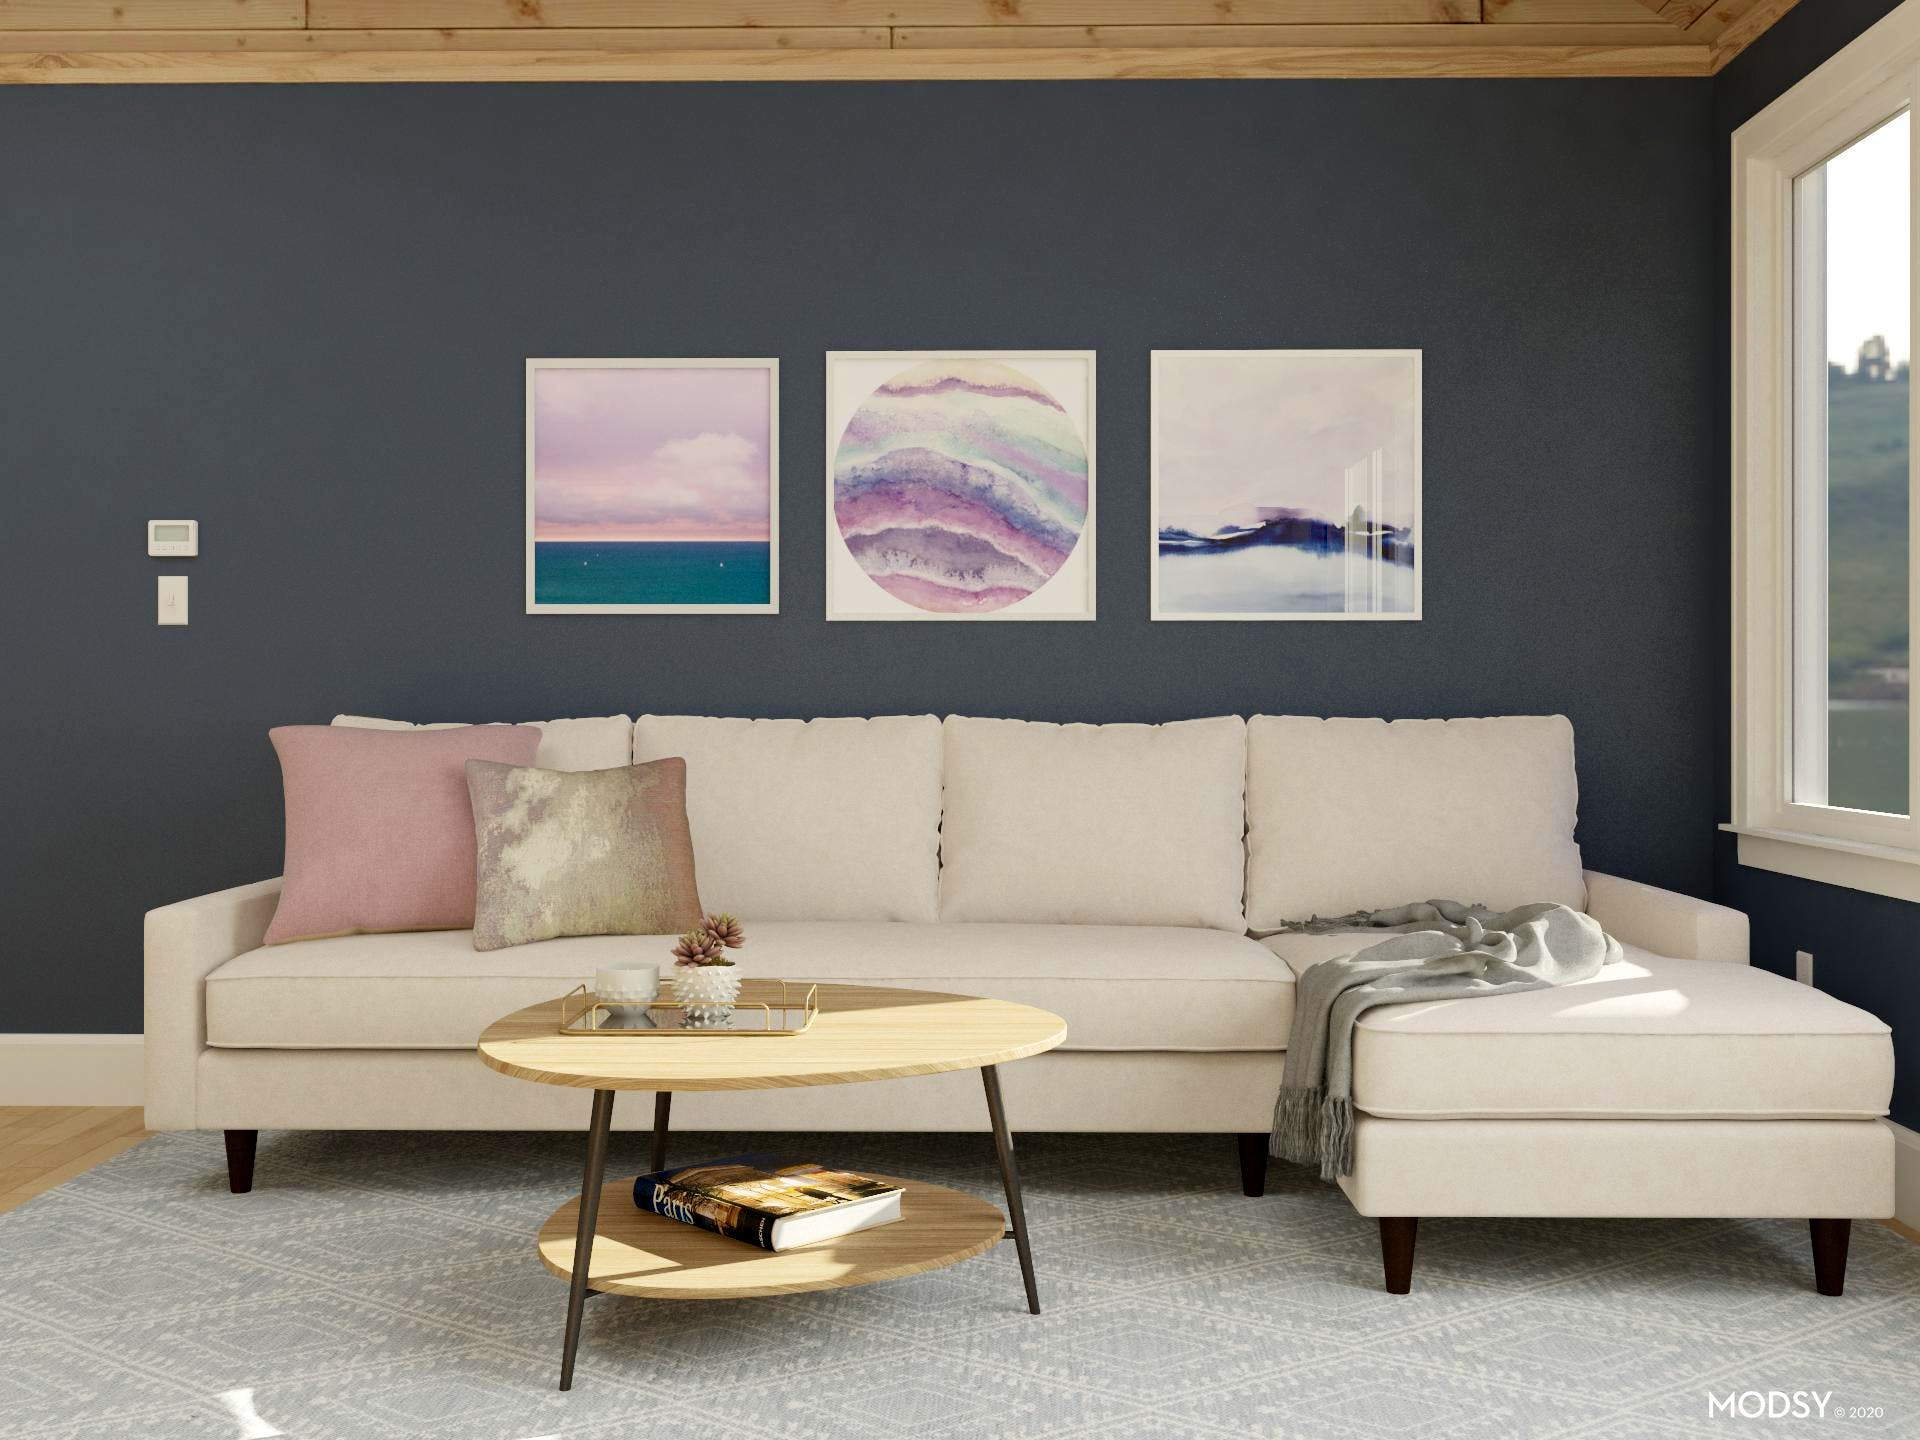 Mid-Centurey-Modren Sectional With Ample Seating in a Restful Blue-Green Space